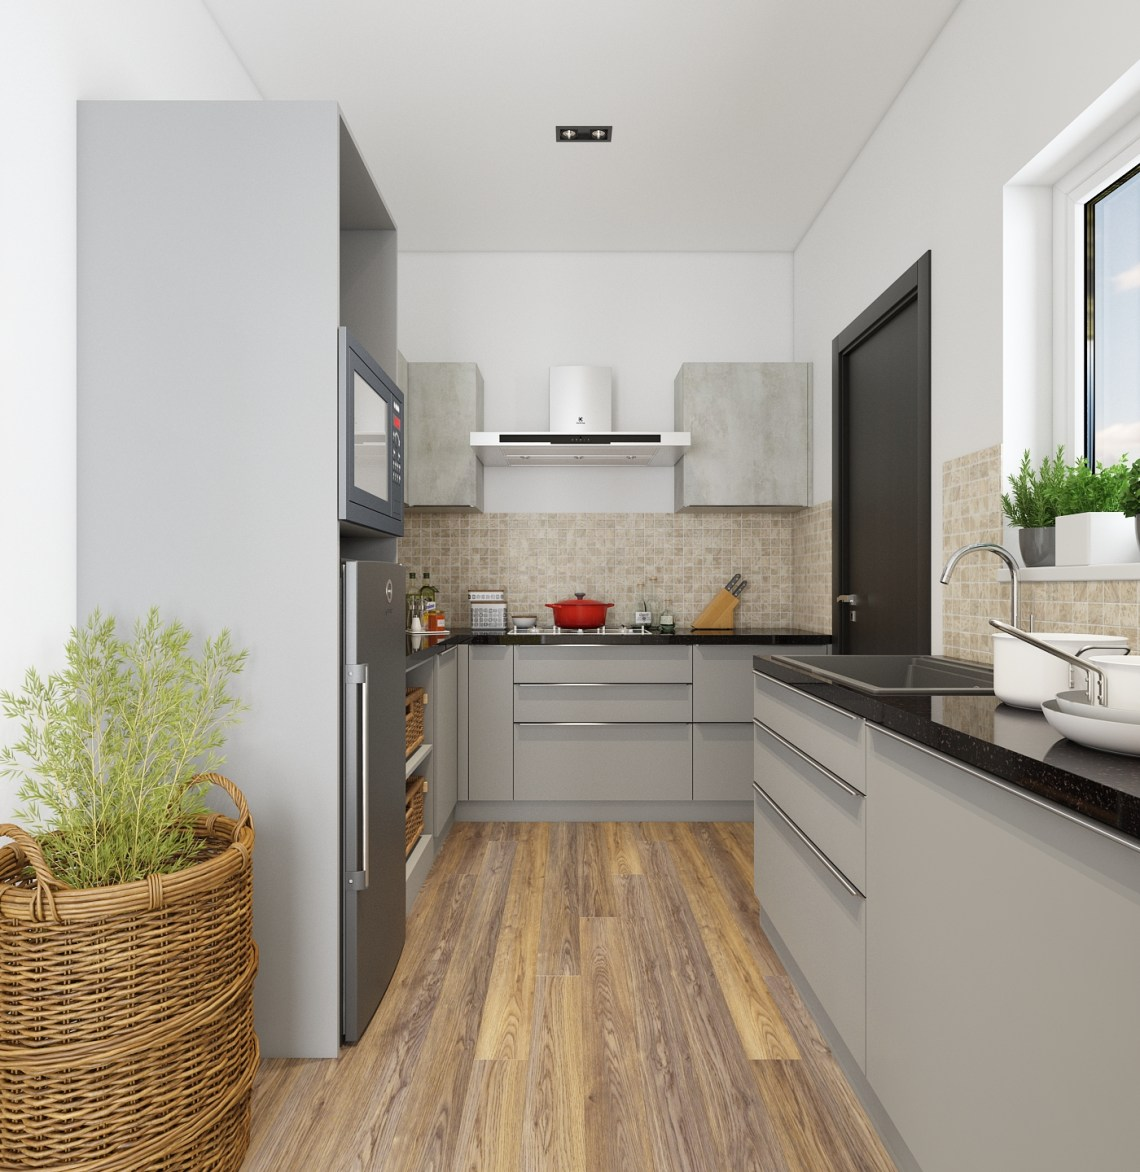 5 Stylish Ideas For Small Kitchens Or Mini Kitchens Design Cafe